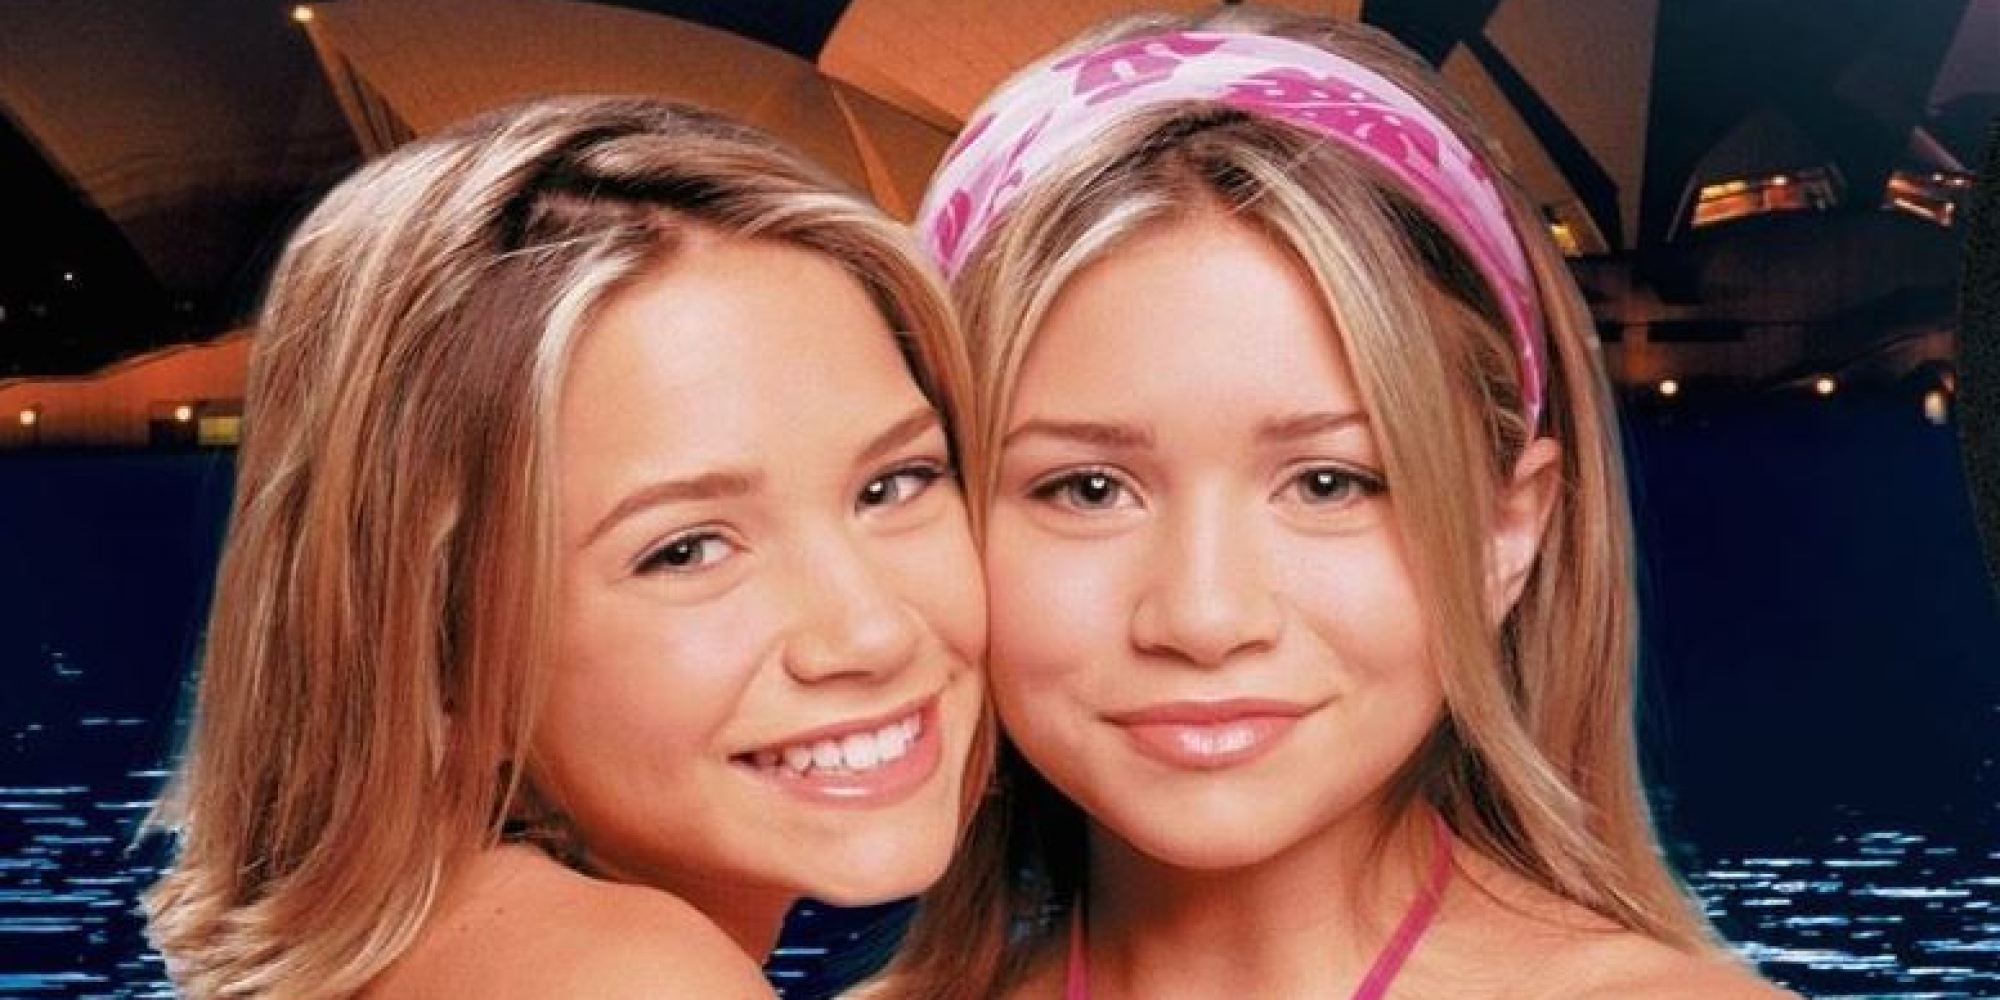 Sweet Baby Girl Wallpaper For Facebook Mary Kate And Ashley Olsen S Movies And Tv Shows Are